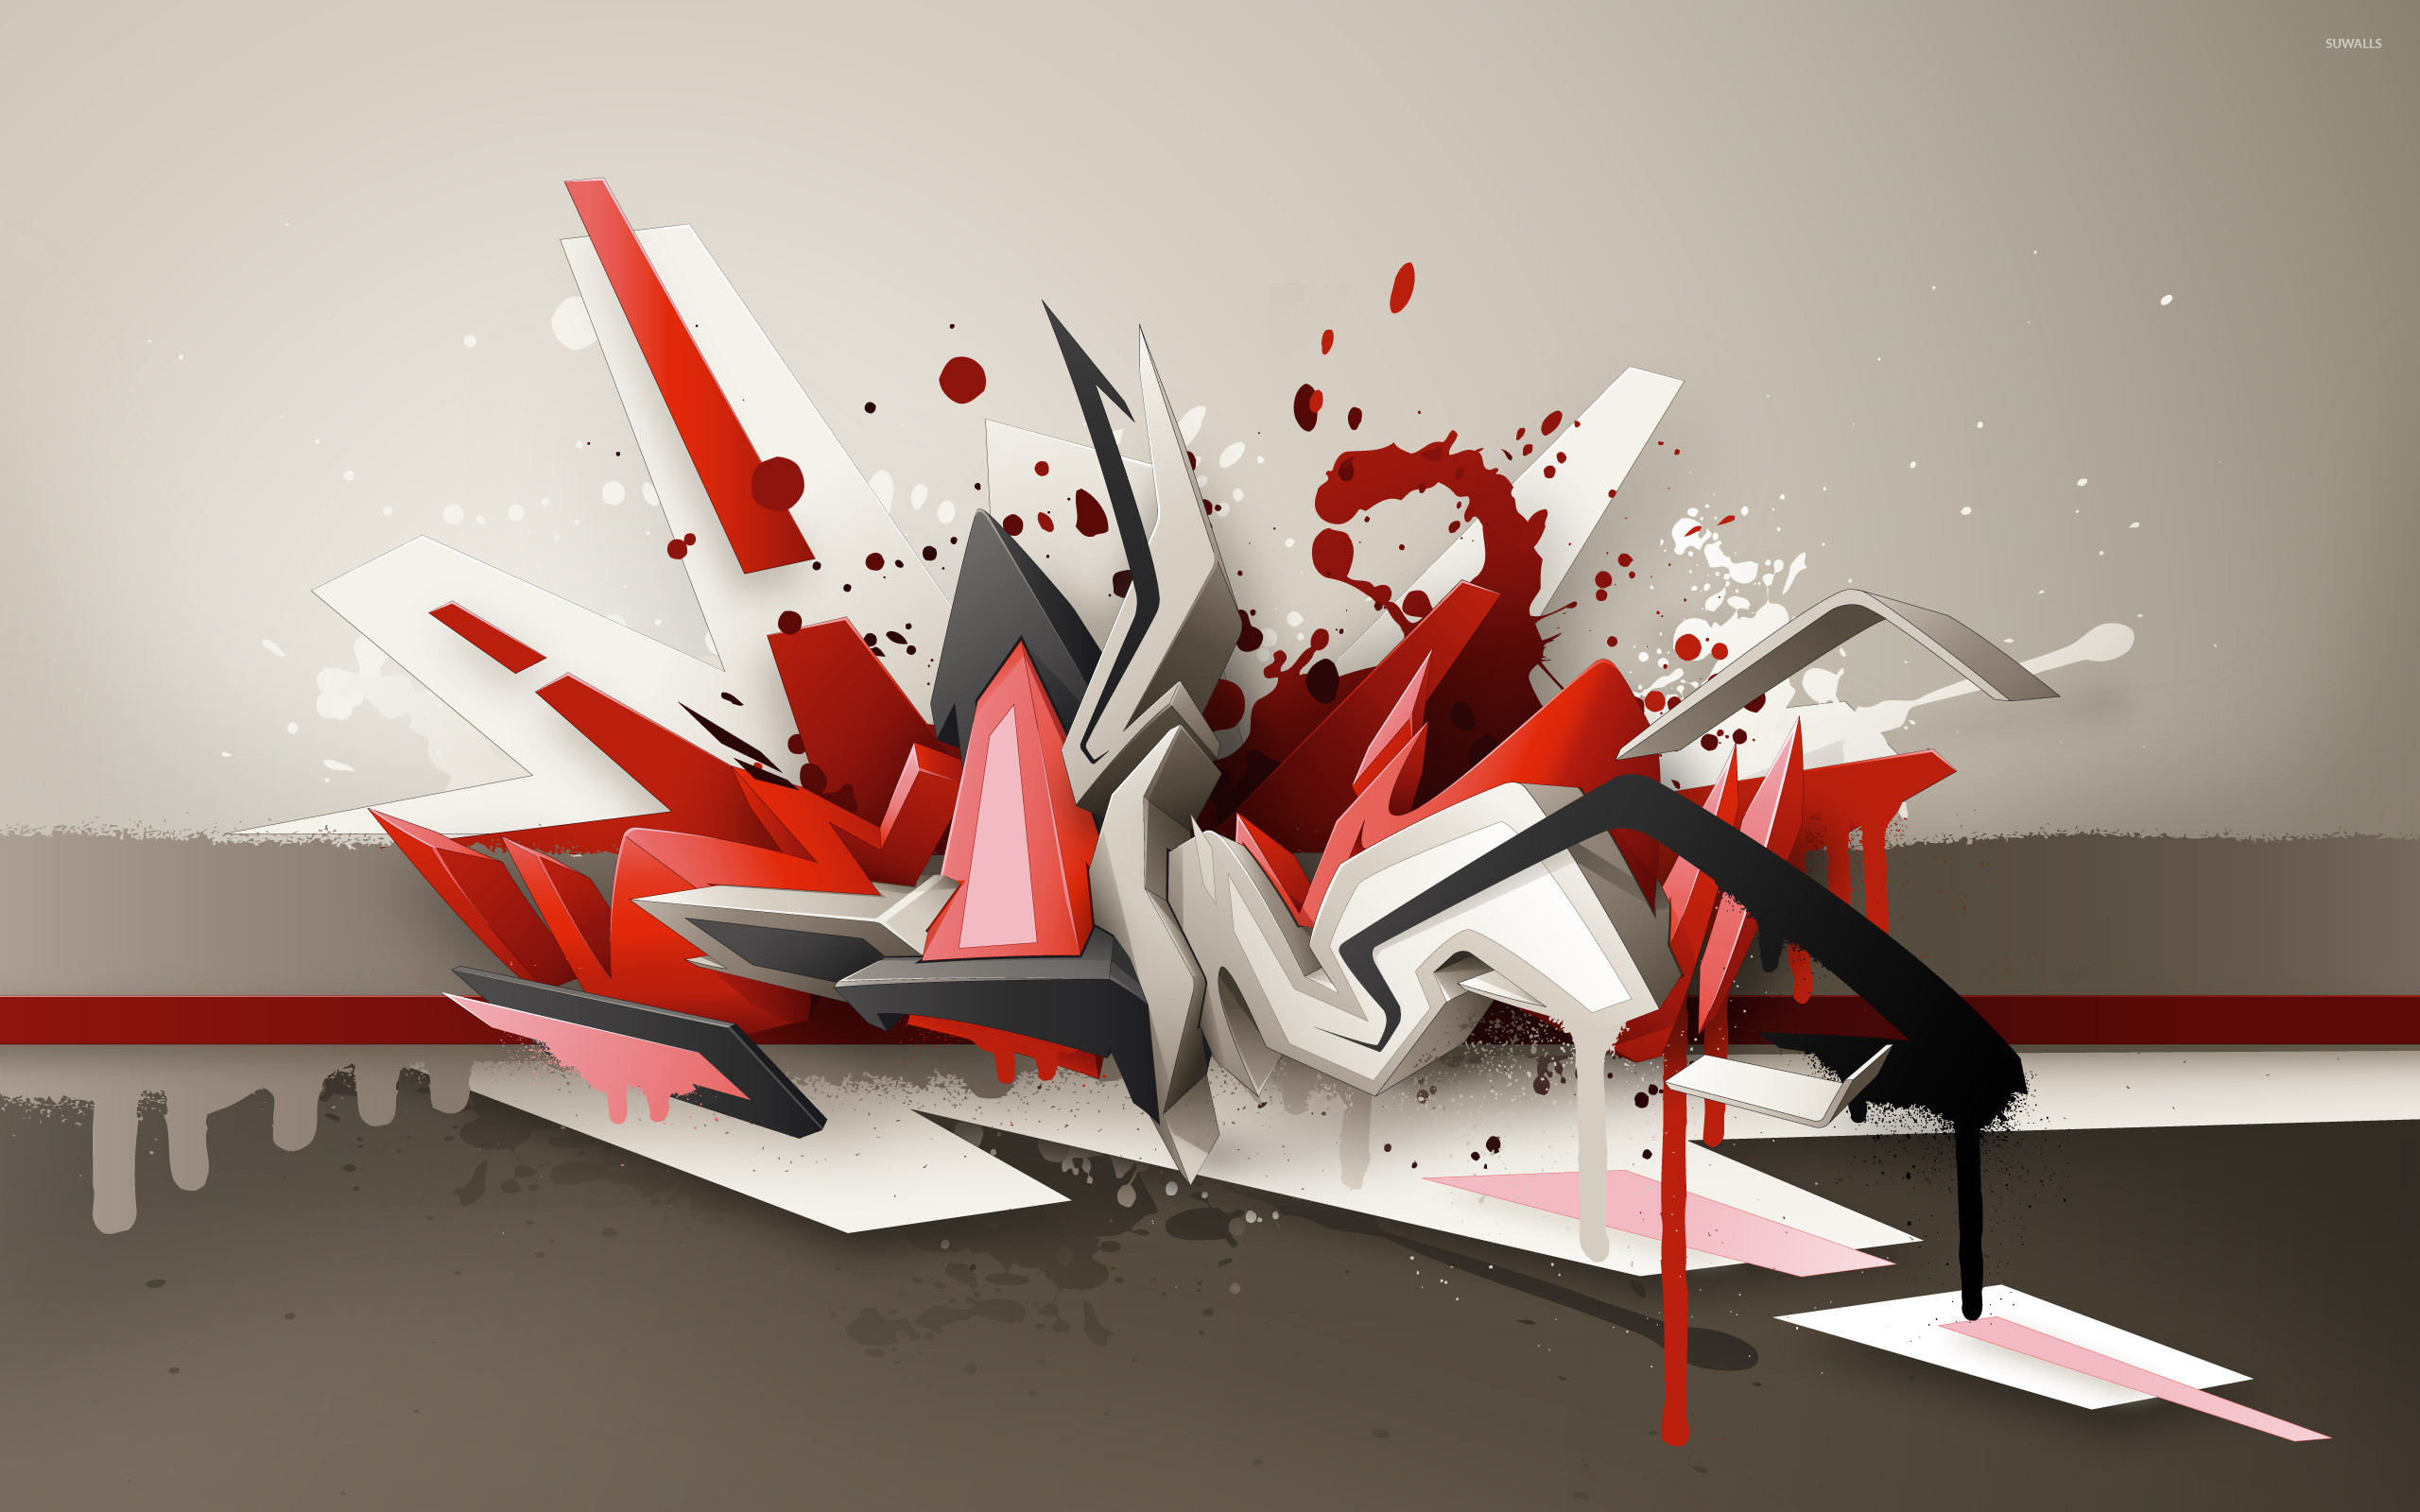 Res: 2560x1600, Paint splash on different shapes wallpaper